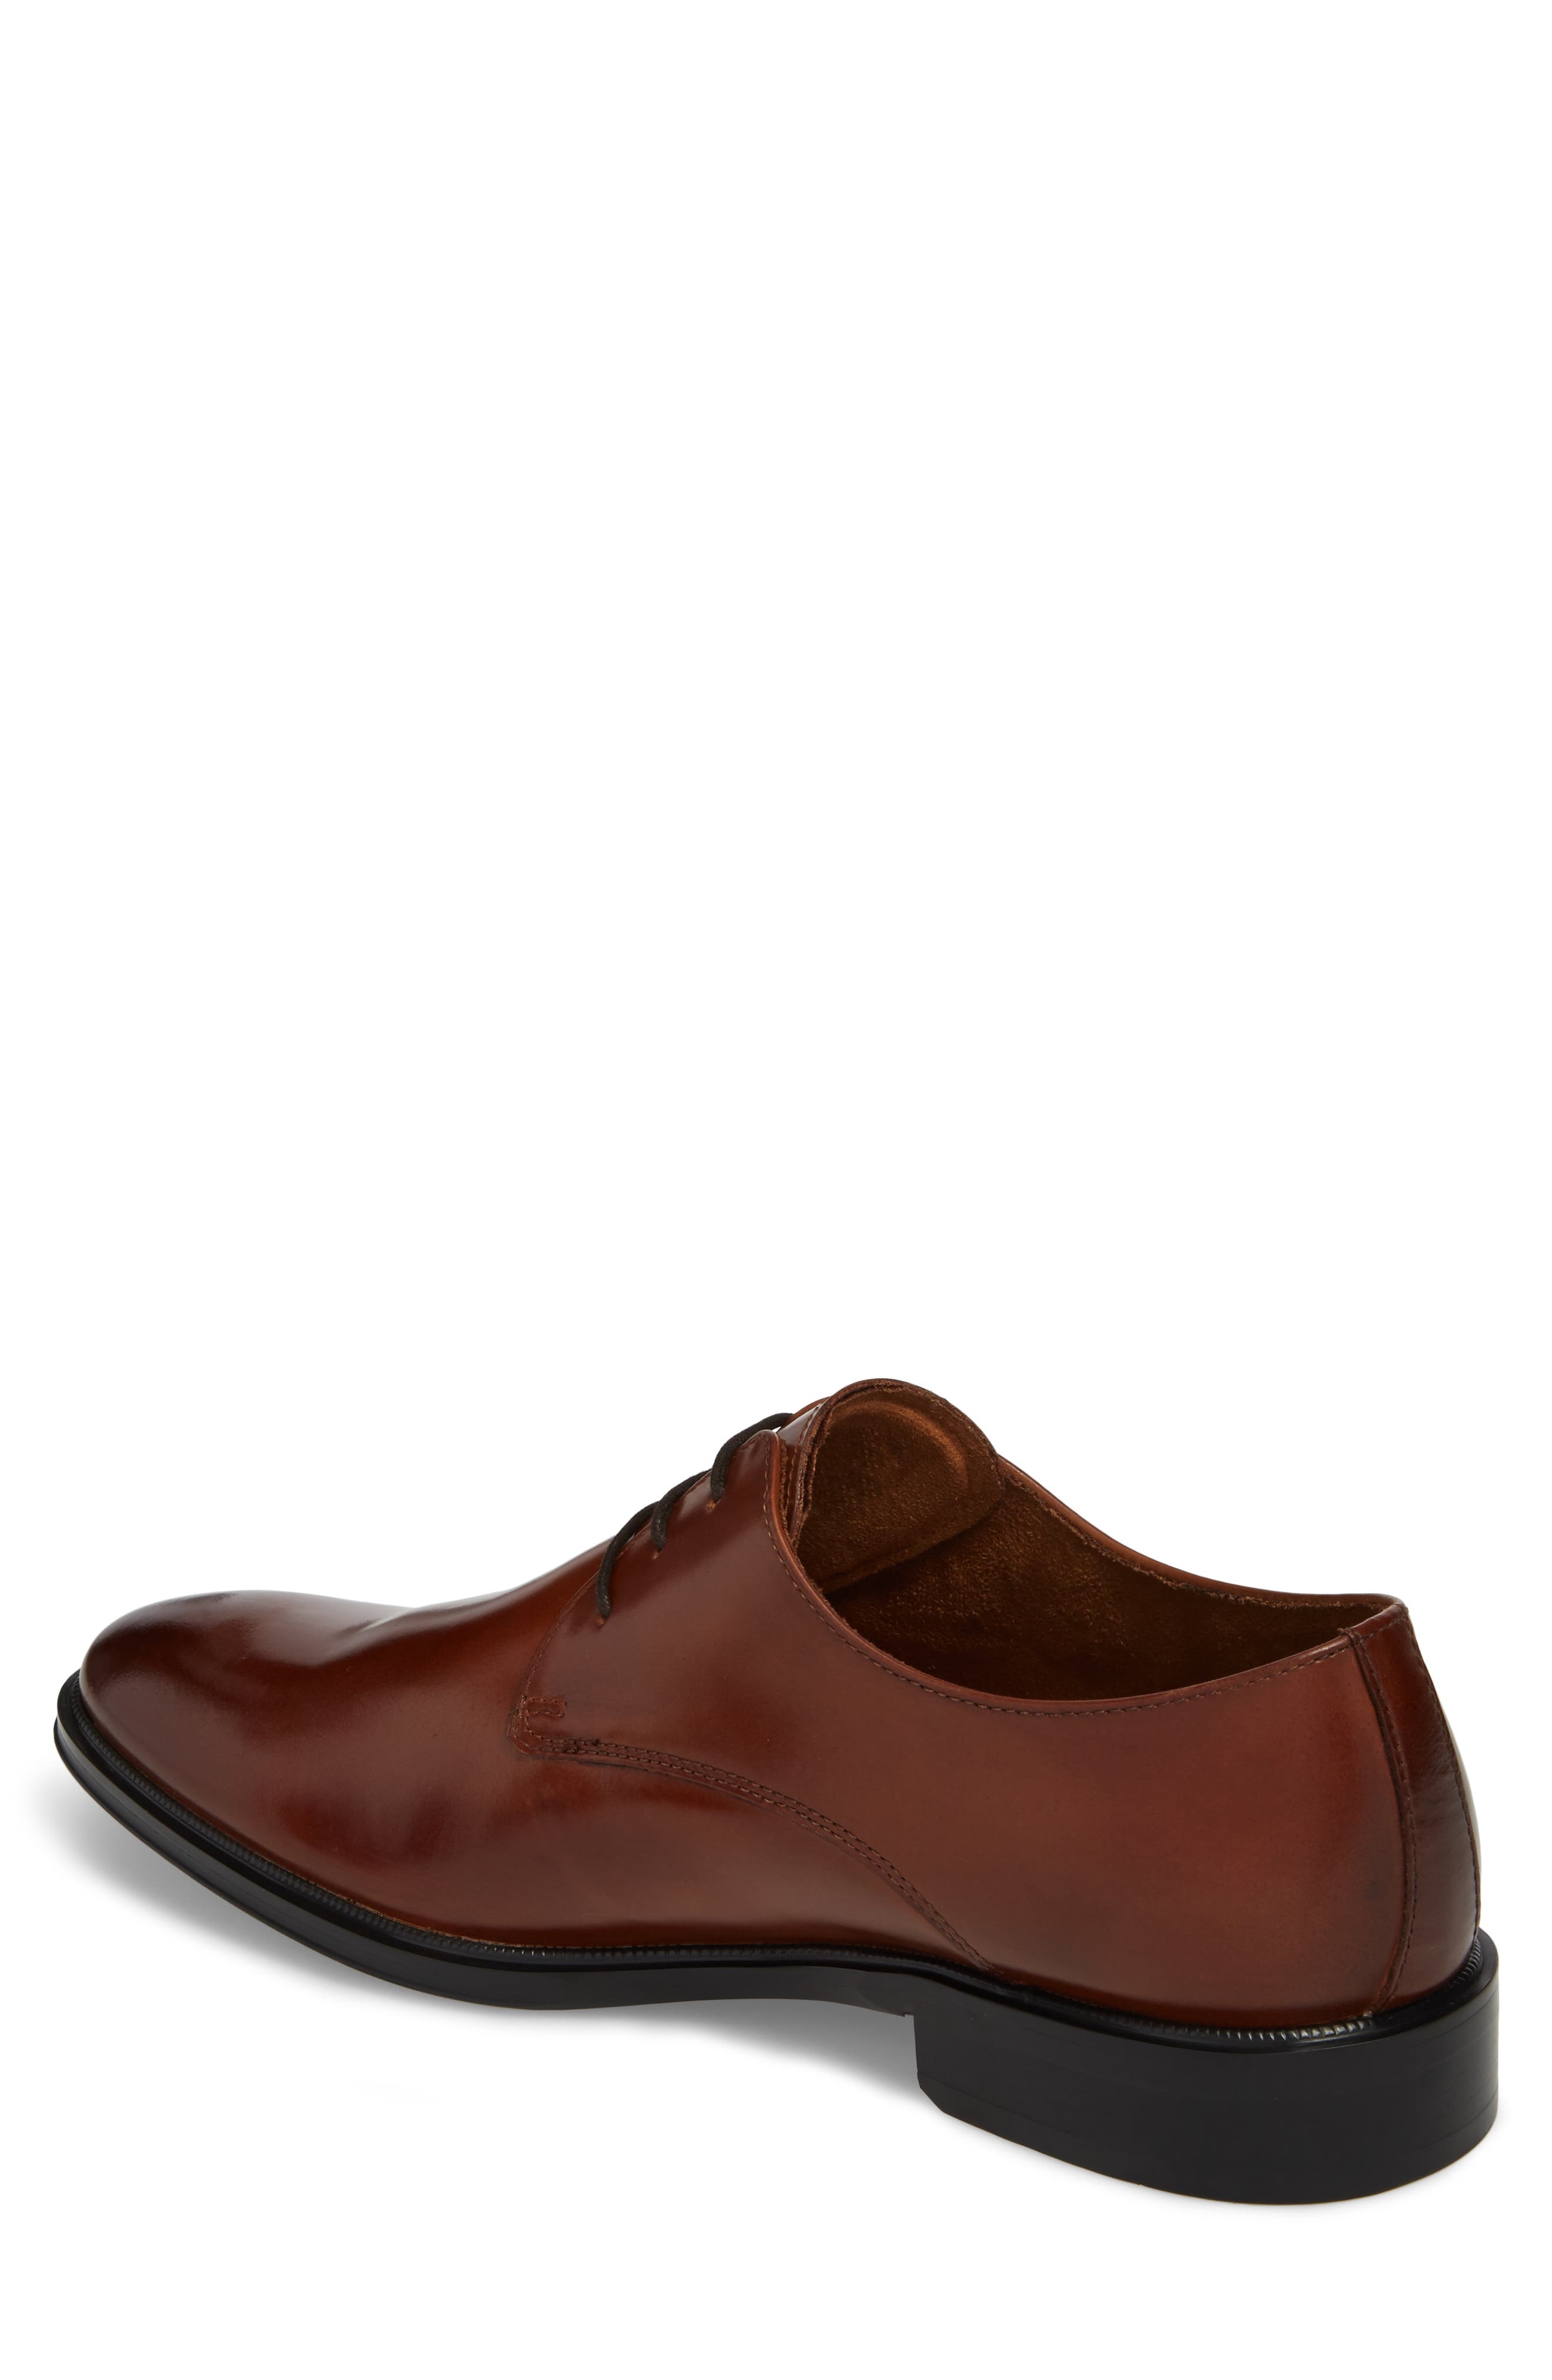 Kenneth Cole Tully Plain Toe Derby,                             Alternate thumbnail 2, color,                             Cognac Leather